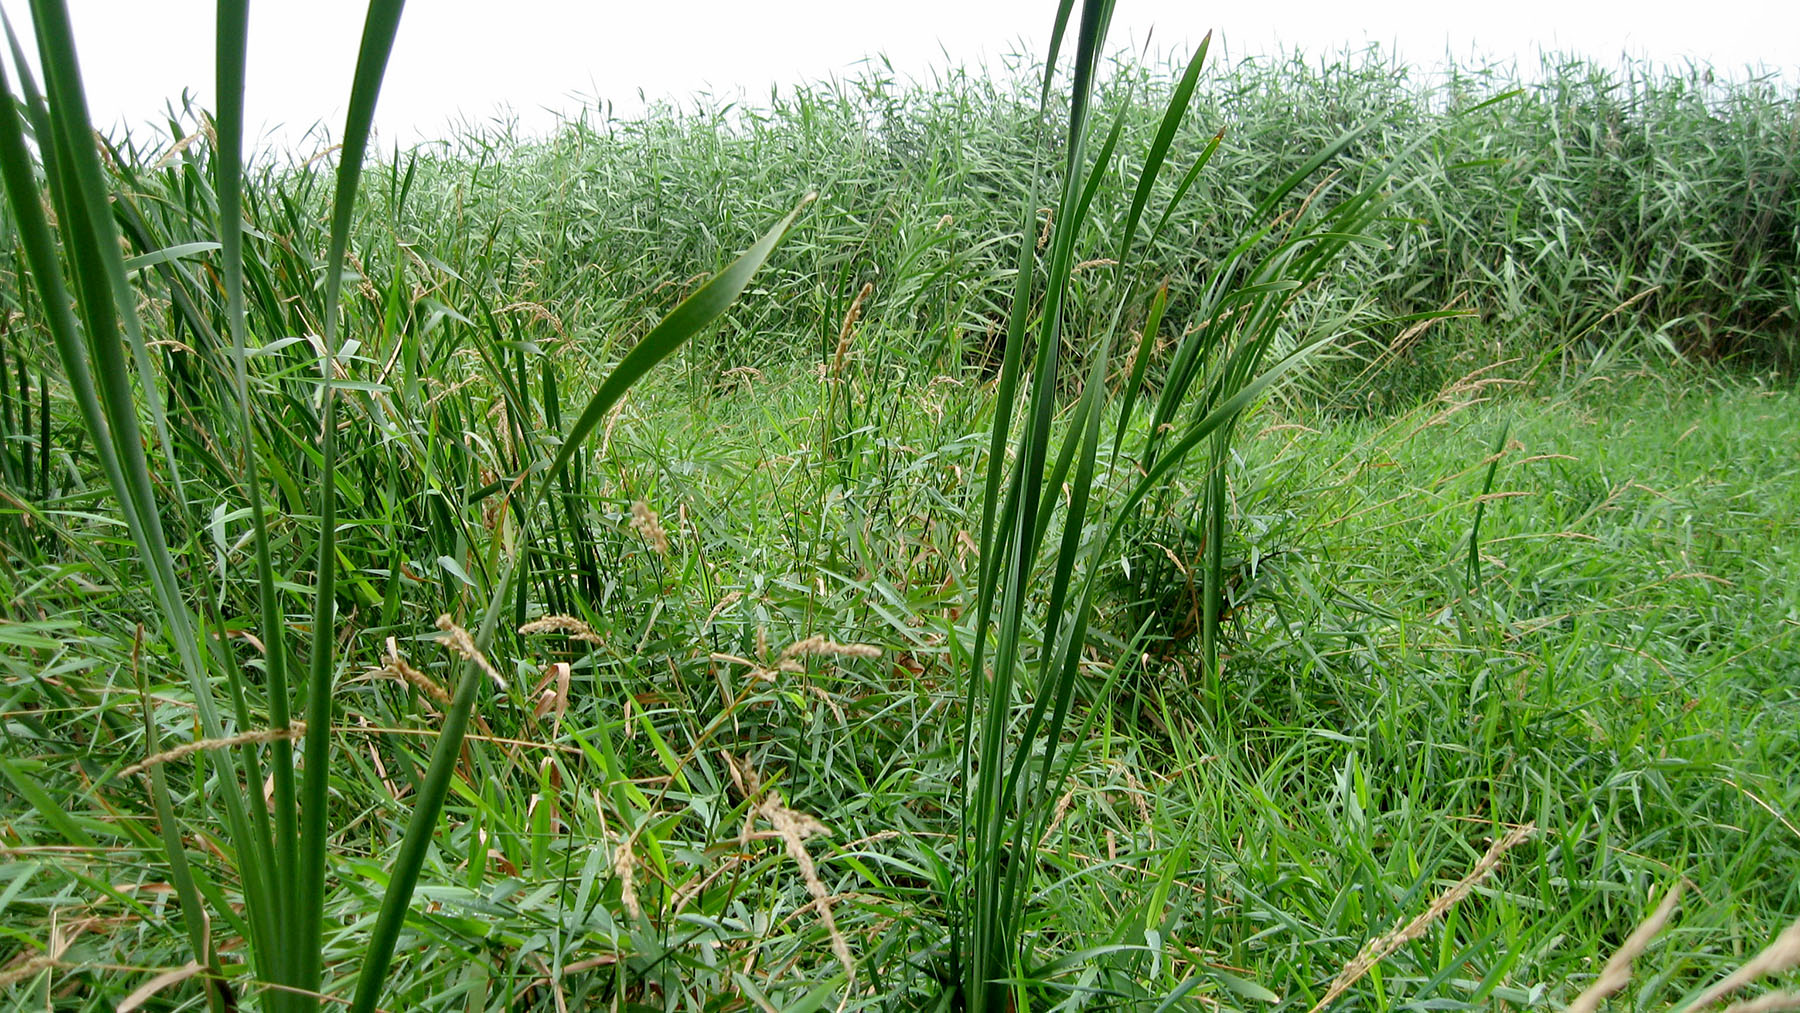 Phragmites and invasive cattails crowd out most native plant species. (Photo by Greg Spyreas)